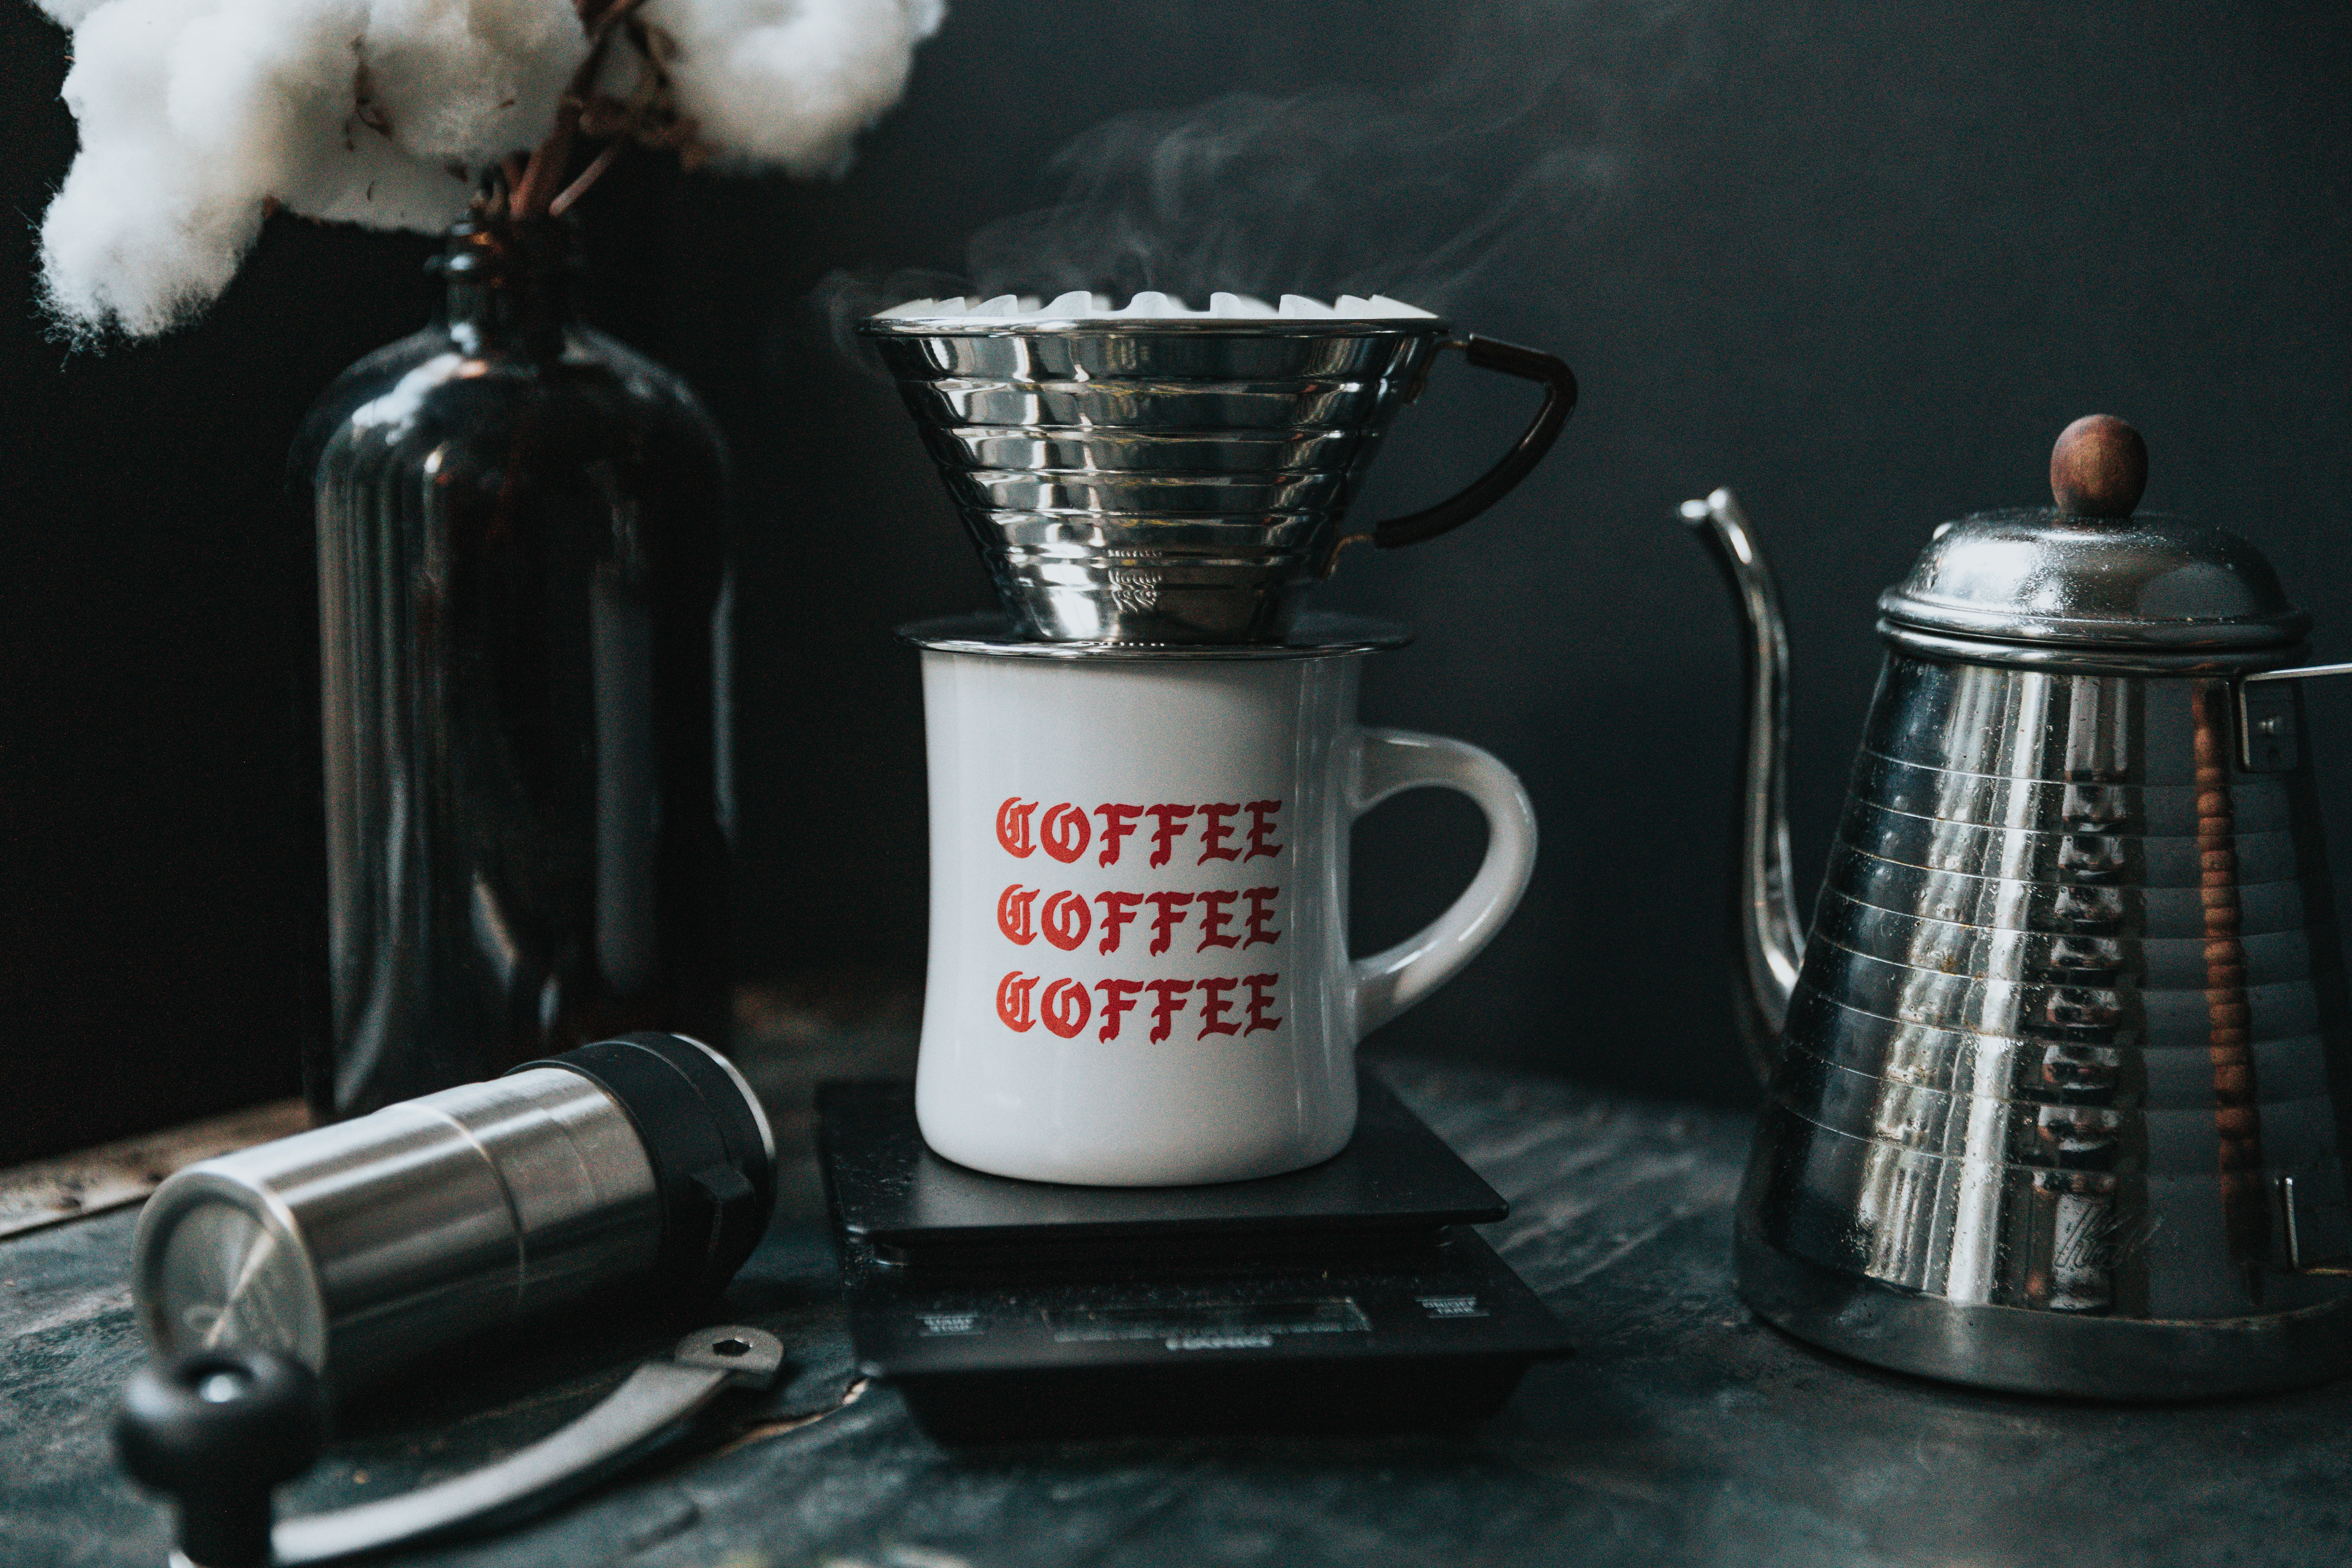 For Black Coffee Lovers - Coffee Brewing Alternatives